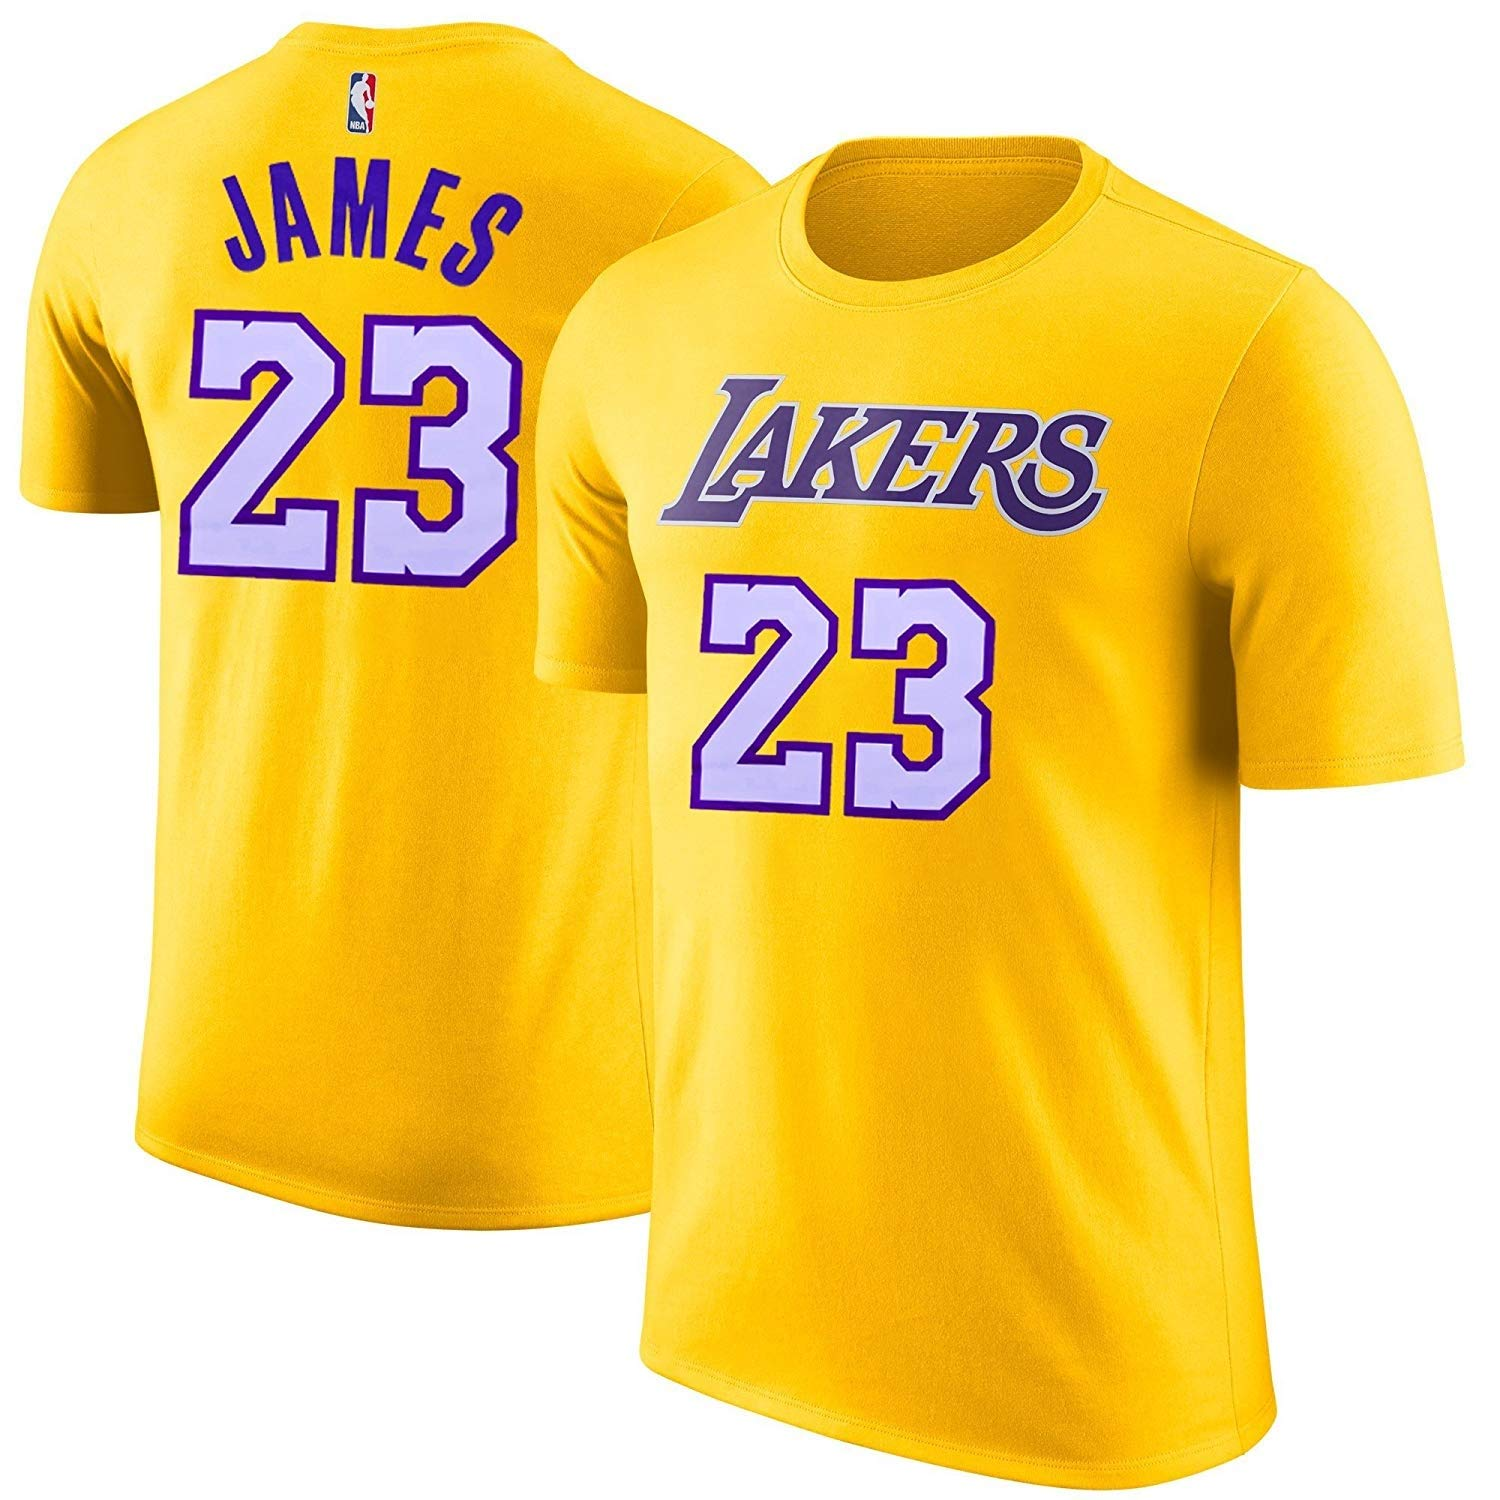 934033ef3 Top4  Outerstuff LeBron James Los Angeles Lakers Yellow Youth Name   Number  Jersey T-Shirt